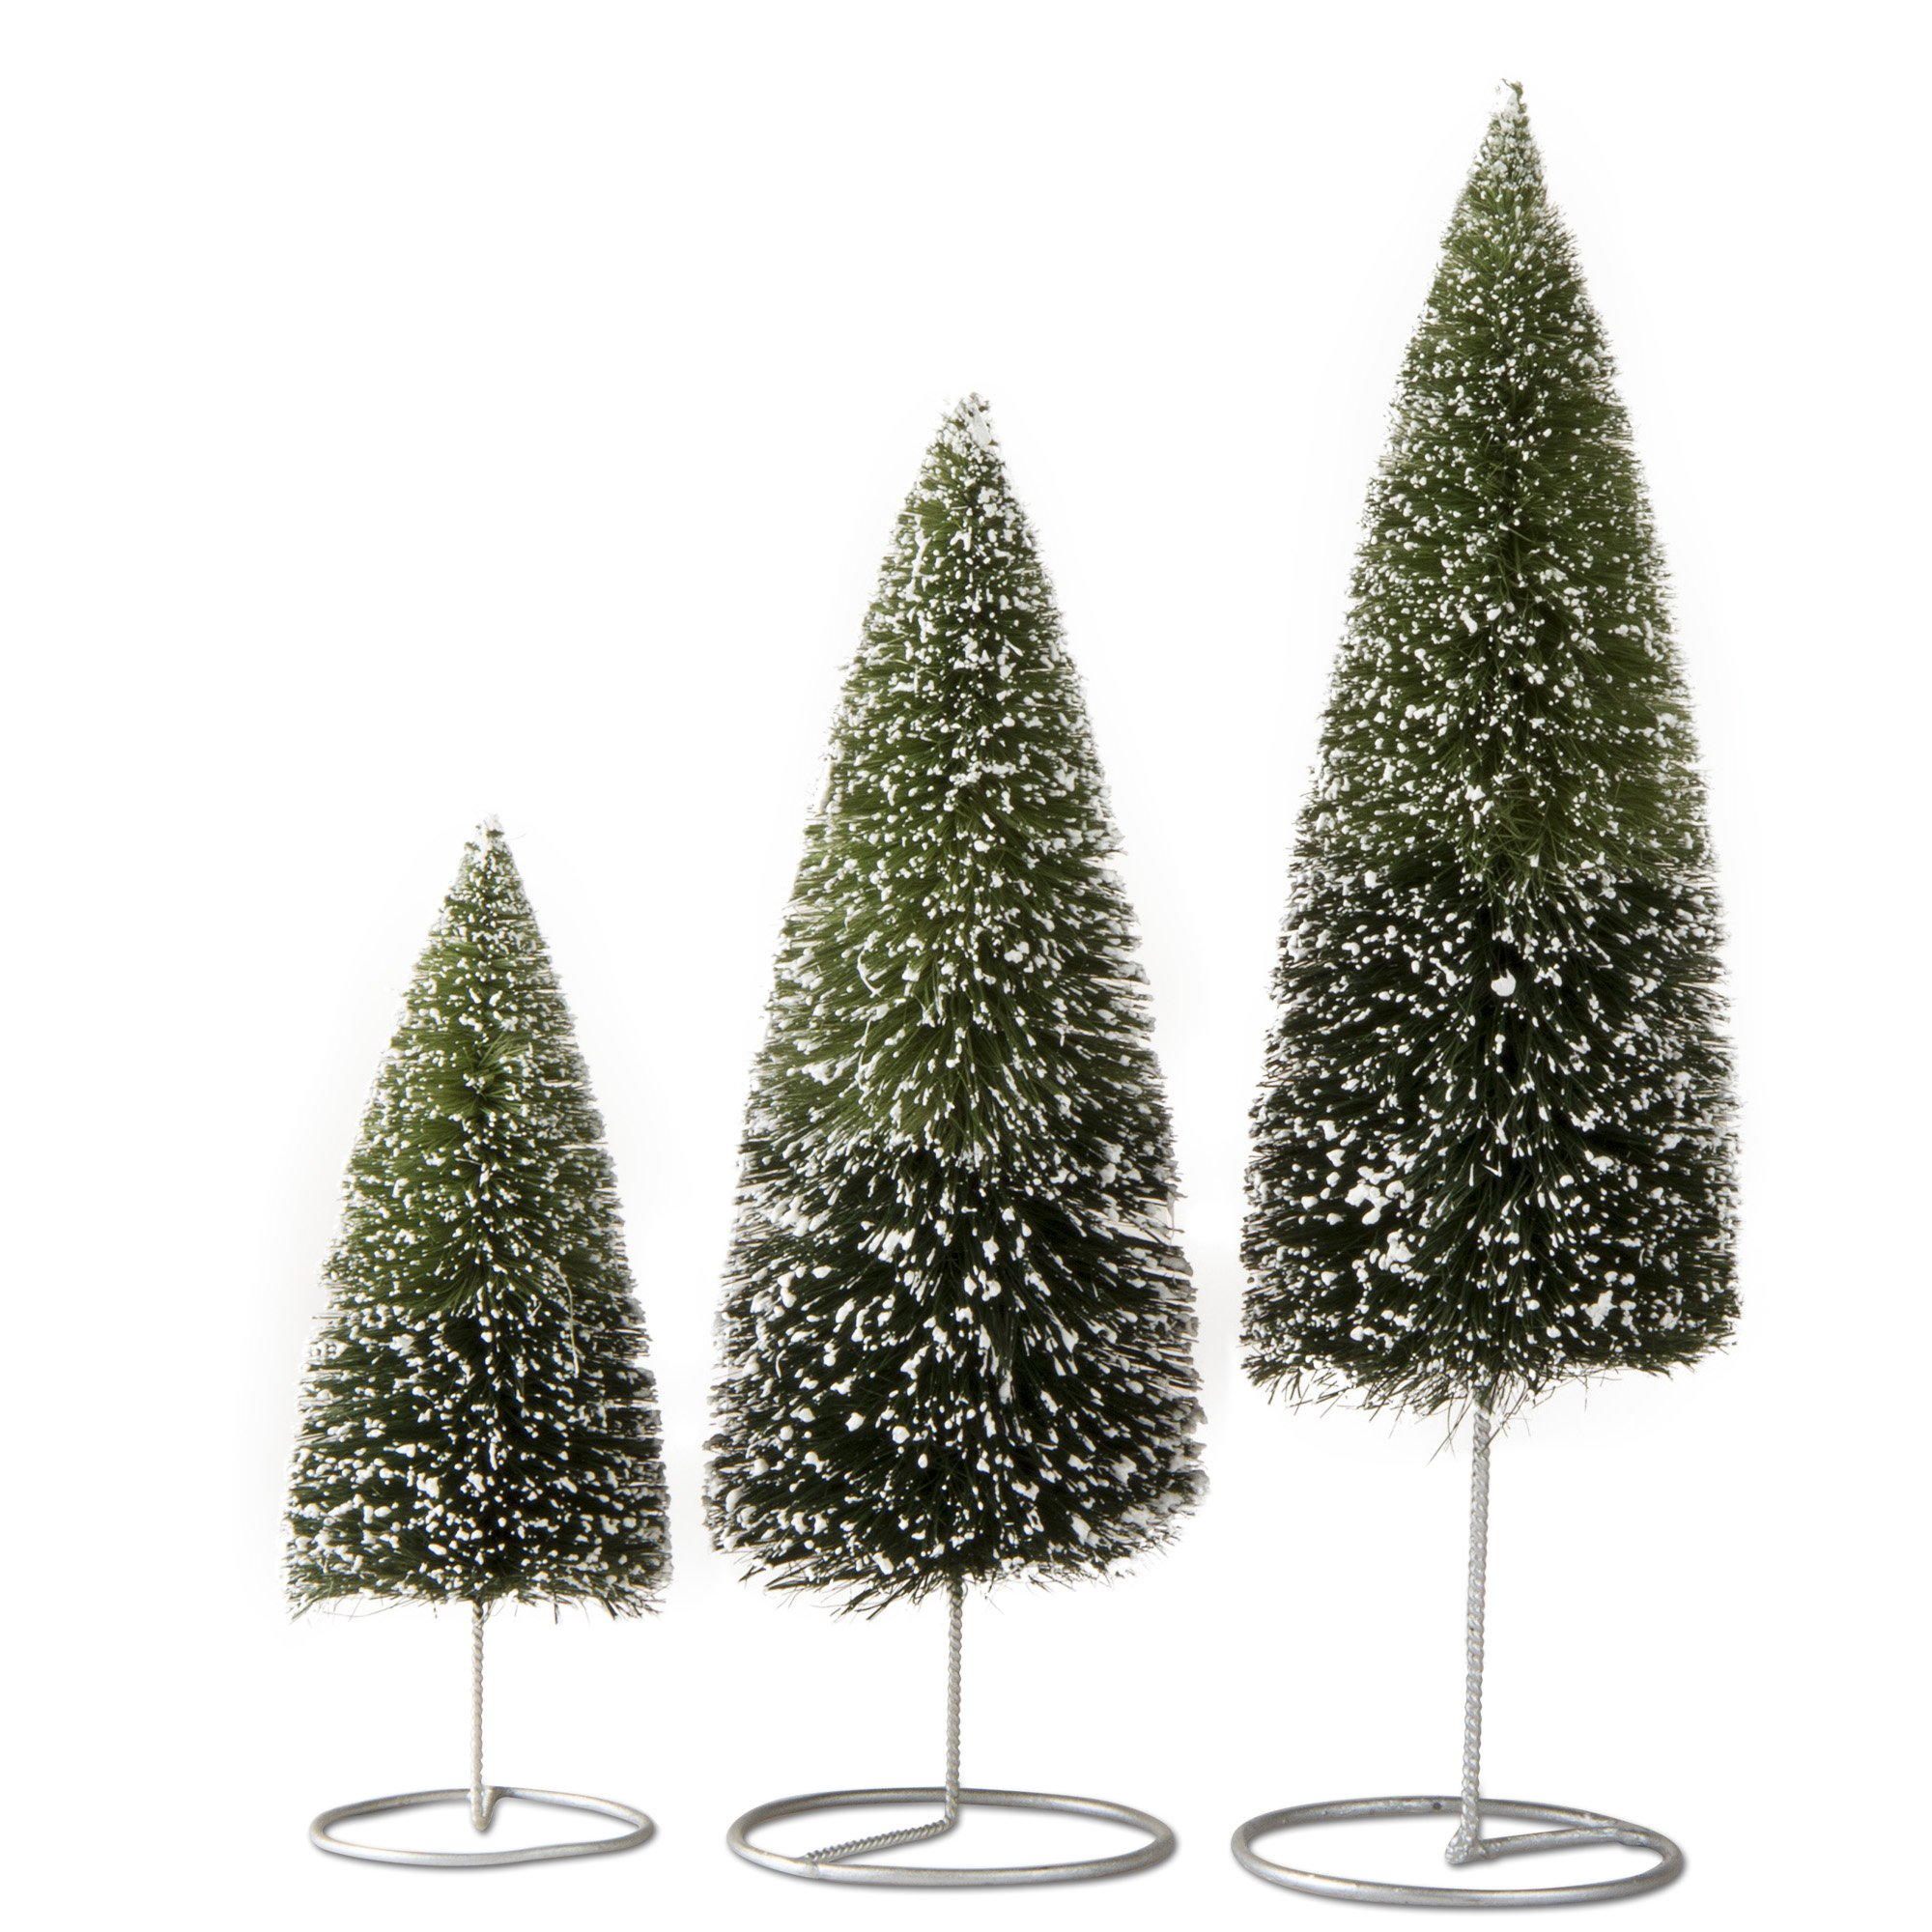 tag ltd Tag Woodland Trees Set of 3